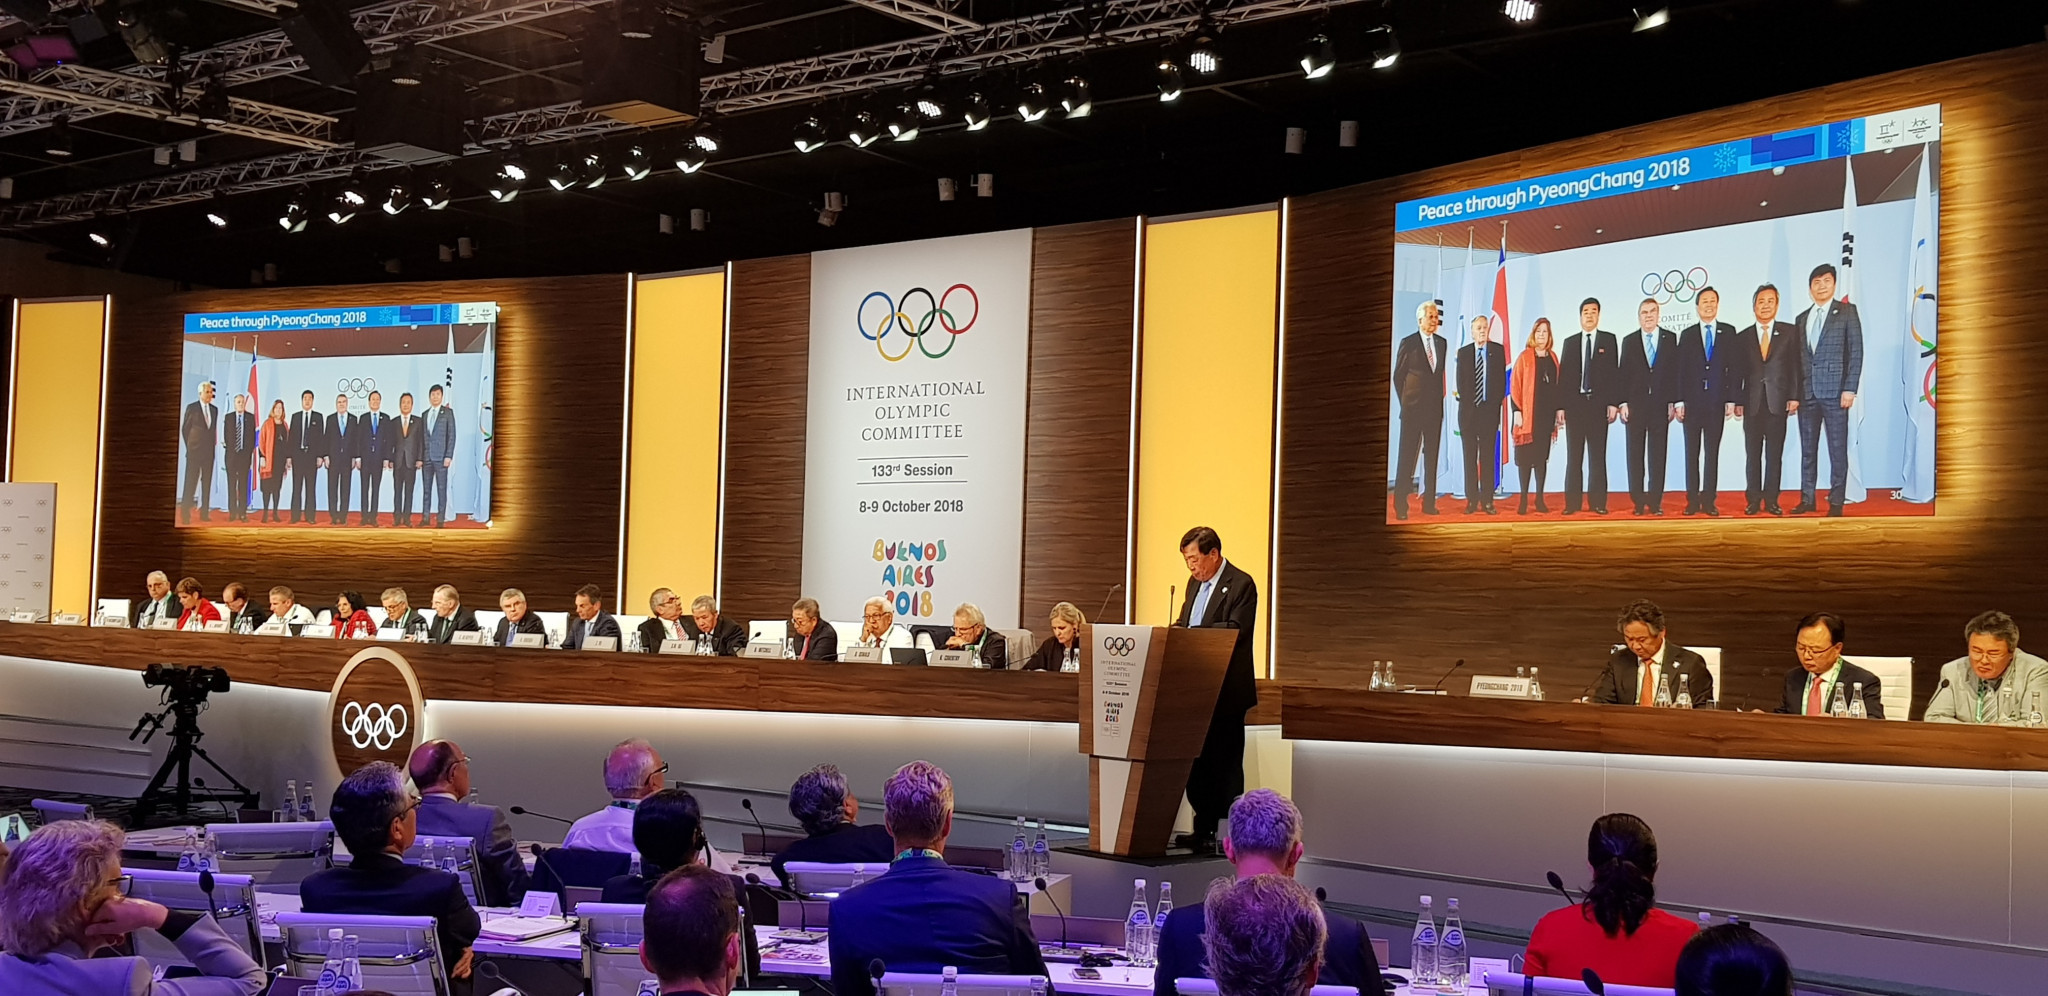 Pyeongchang 2018 claim $55 million surplus from Winter Olympics as IOC vow to give share to Korean sport